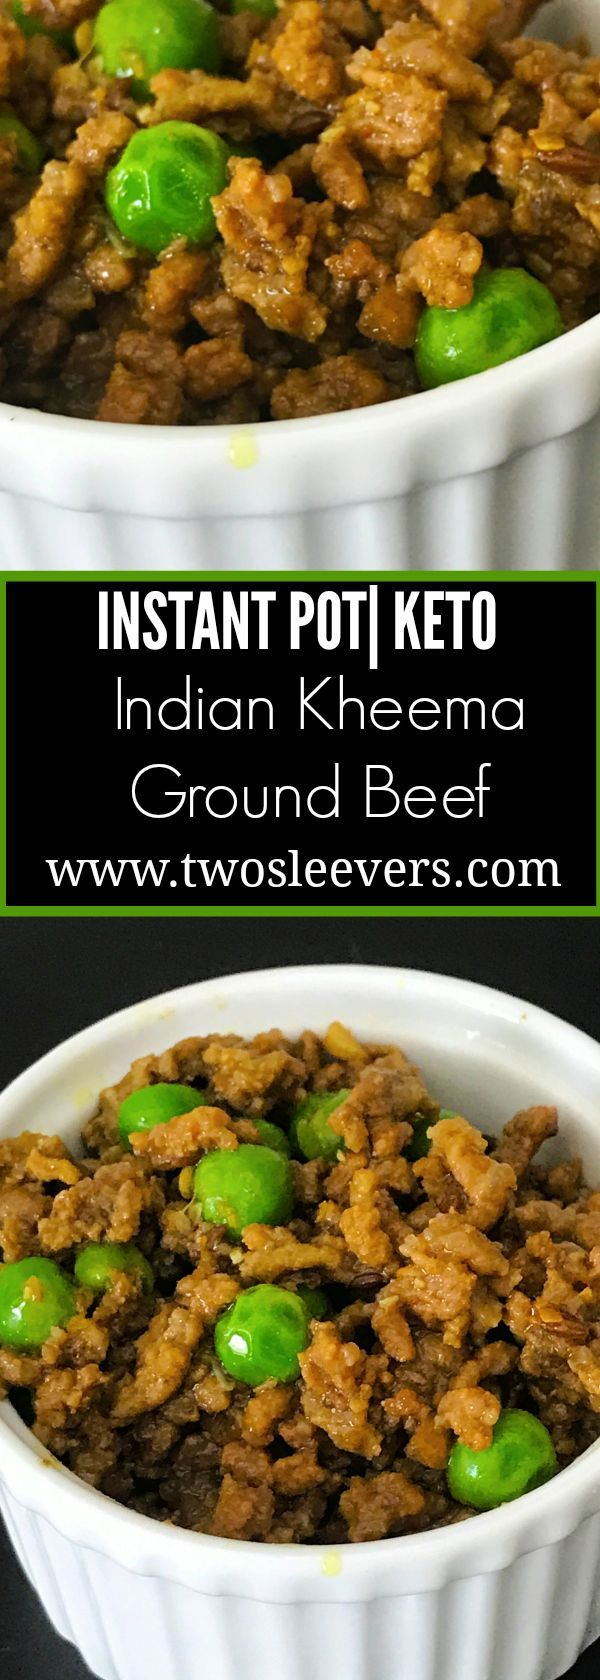 Instant Pot Keto Indian Kheema. Easy low carb recipe for ground beef. Family-friendly an ready in under 30 minutes in your pressure cooker or on the stove top. - - https://twosleevers.com?utm_content=buffera7274&utm_medium=social&utm_source=pinterest.com&utm_campaign=buffer